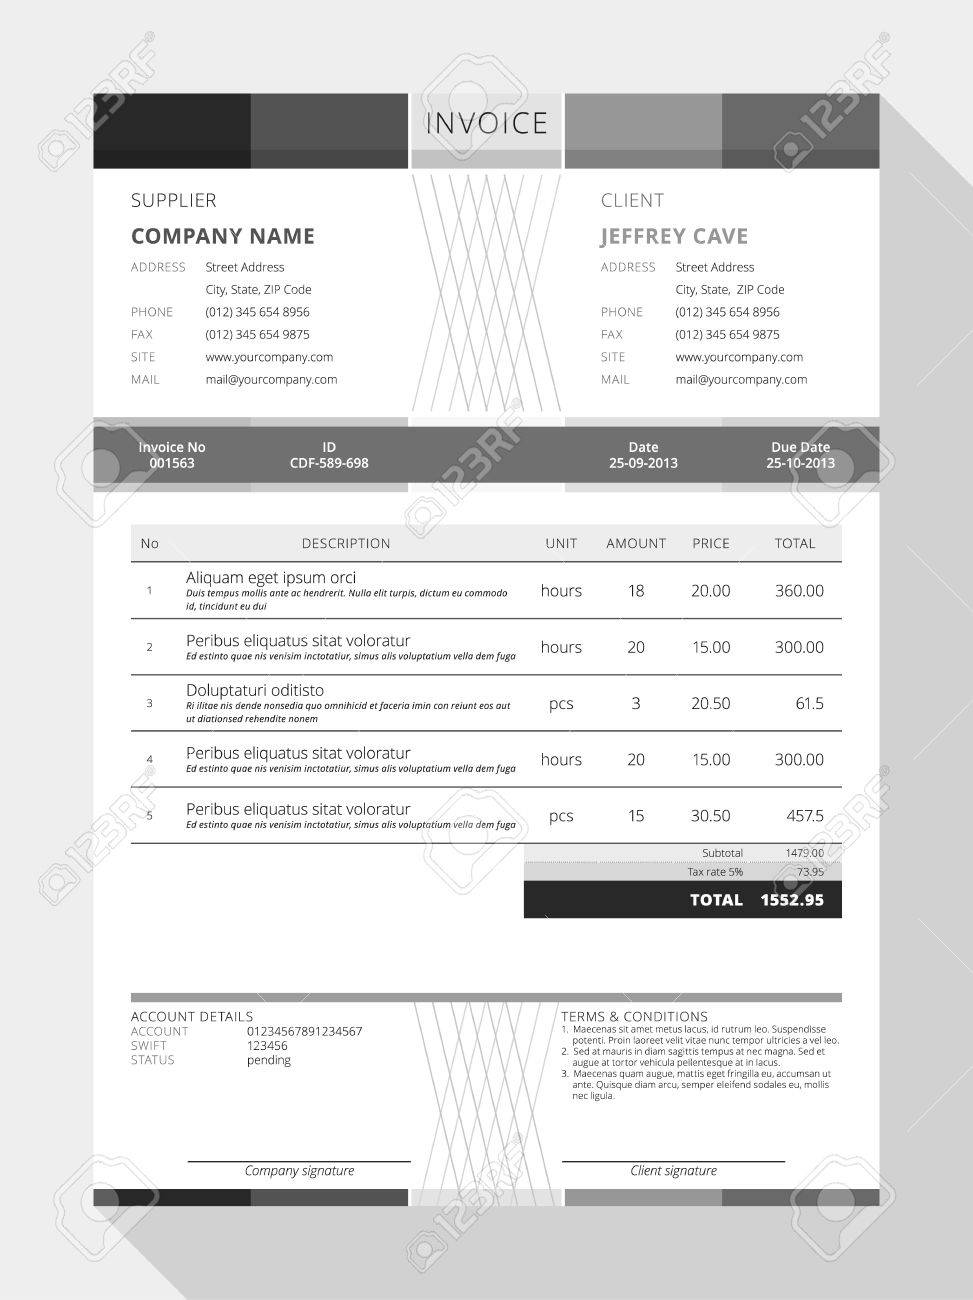 Howcanigettallerus  Marvellous Design An Invoice  Professional Graphic Design Invoice  With Lovable Vector Customizable Invoice Form Template Design Vector   Design An Invoice With Enchanting Receipt For Cash Payment Form Also Creating A Receipt In Word In Addition Book Receipt Template And Juicing Receipts As Well As Aos Fee Payment Receipt Additionally Rent Receipt Generator From Happytomco With Howcanigettallerus  Lovable Design An Invoice  Professional Graphic Design Invoice  With Enchanting Vector Customizable Invoice Form Template Design Vector   Design An Invoice And Marvellous Receipt For Cash Payment Form Also Creating A Receipt In Word In Addition Book Receipt Template From Happytomco